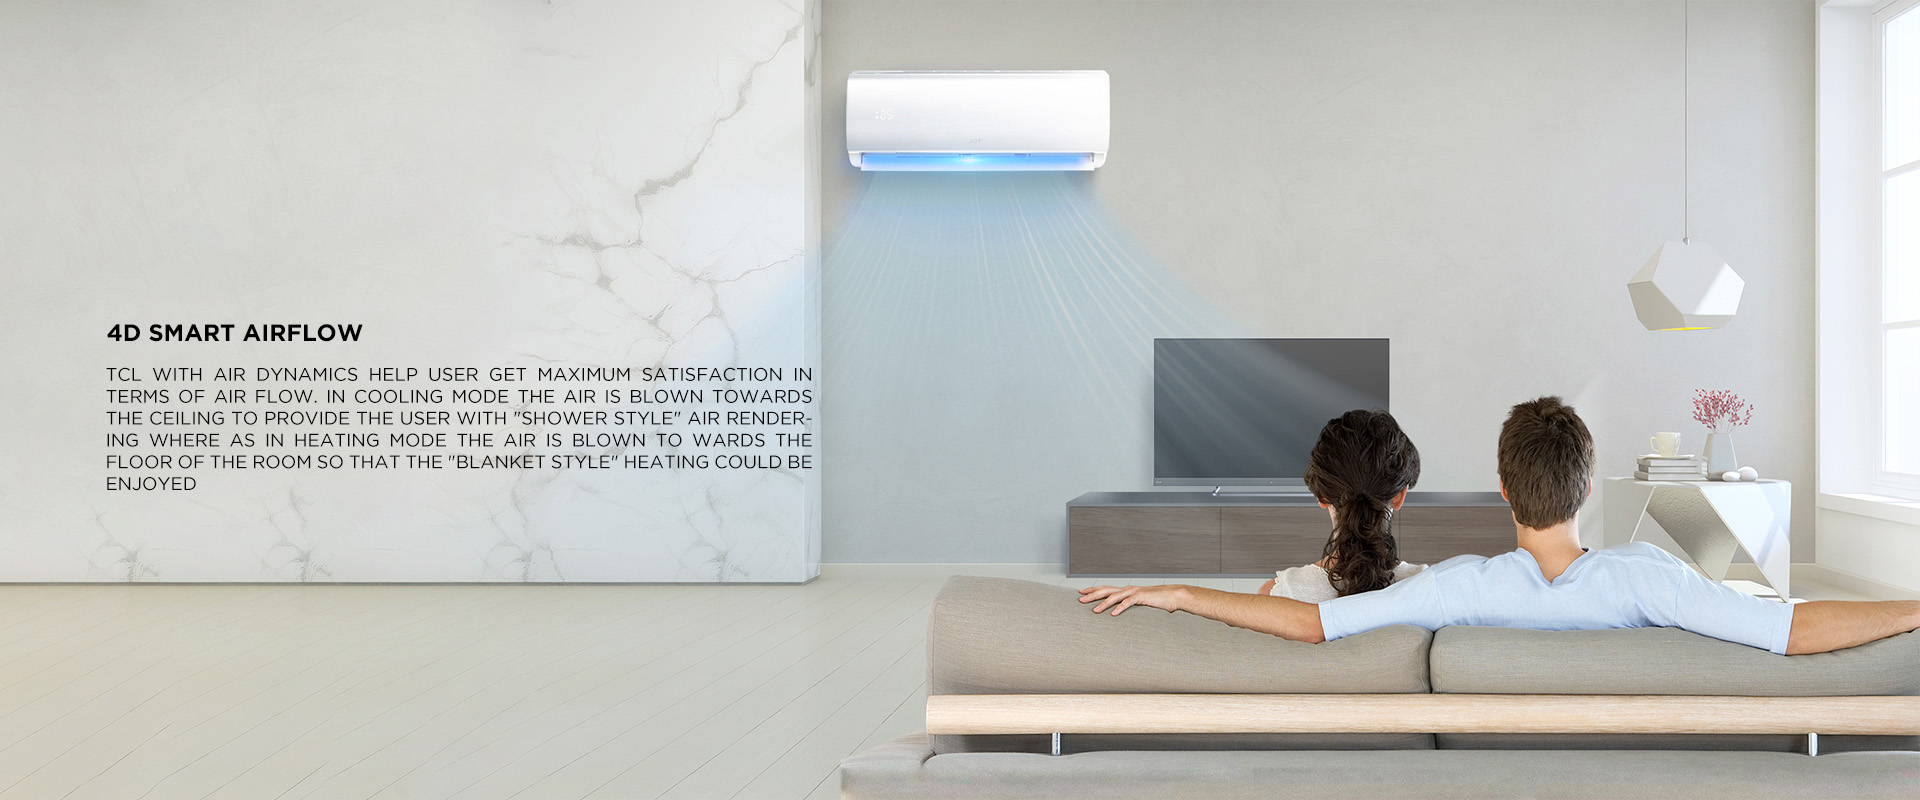 4D Smart Airflow - TCL with air dynamics help user get maximum satisfaction in terms of air flow. In Cooling mode the air is blown towards the ceiling to provide the user with (Shower style) air rendering where as in Heating mode the air is blown to wards the floor of the room so that the (Blanket style) heating could be enjoyed